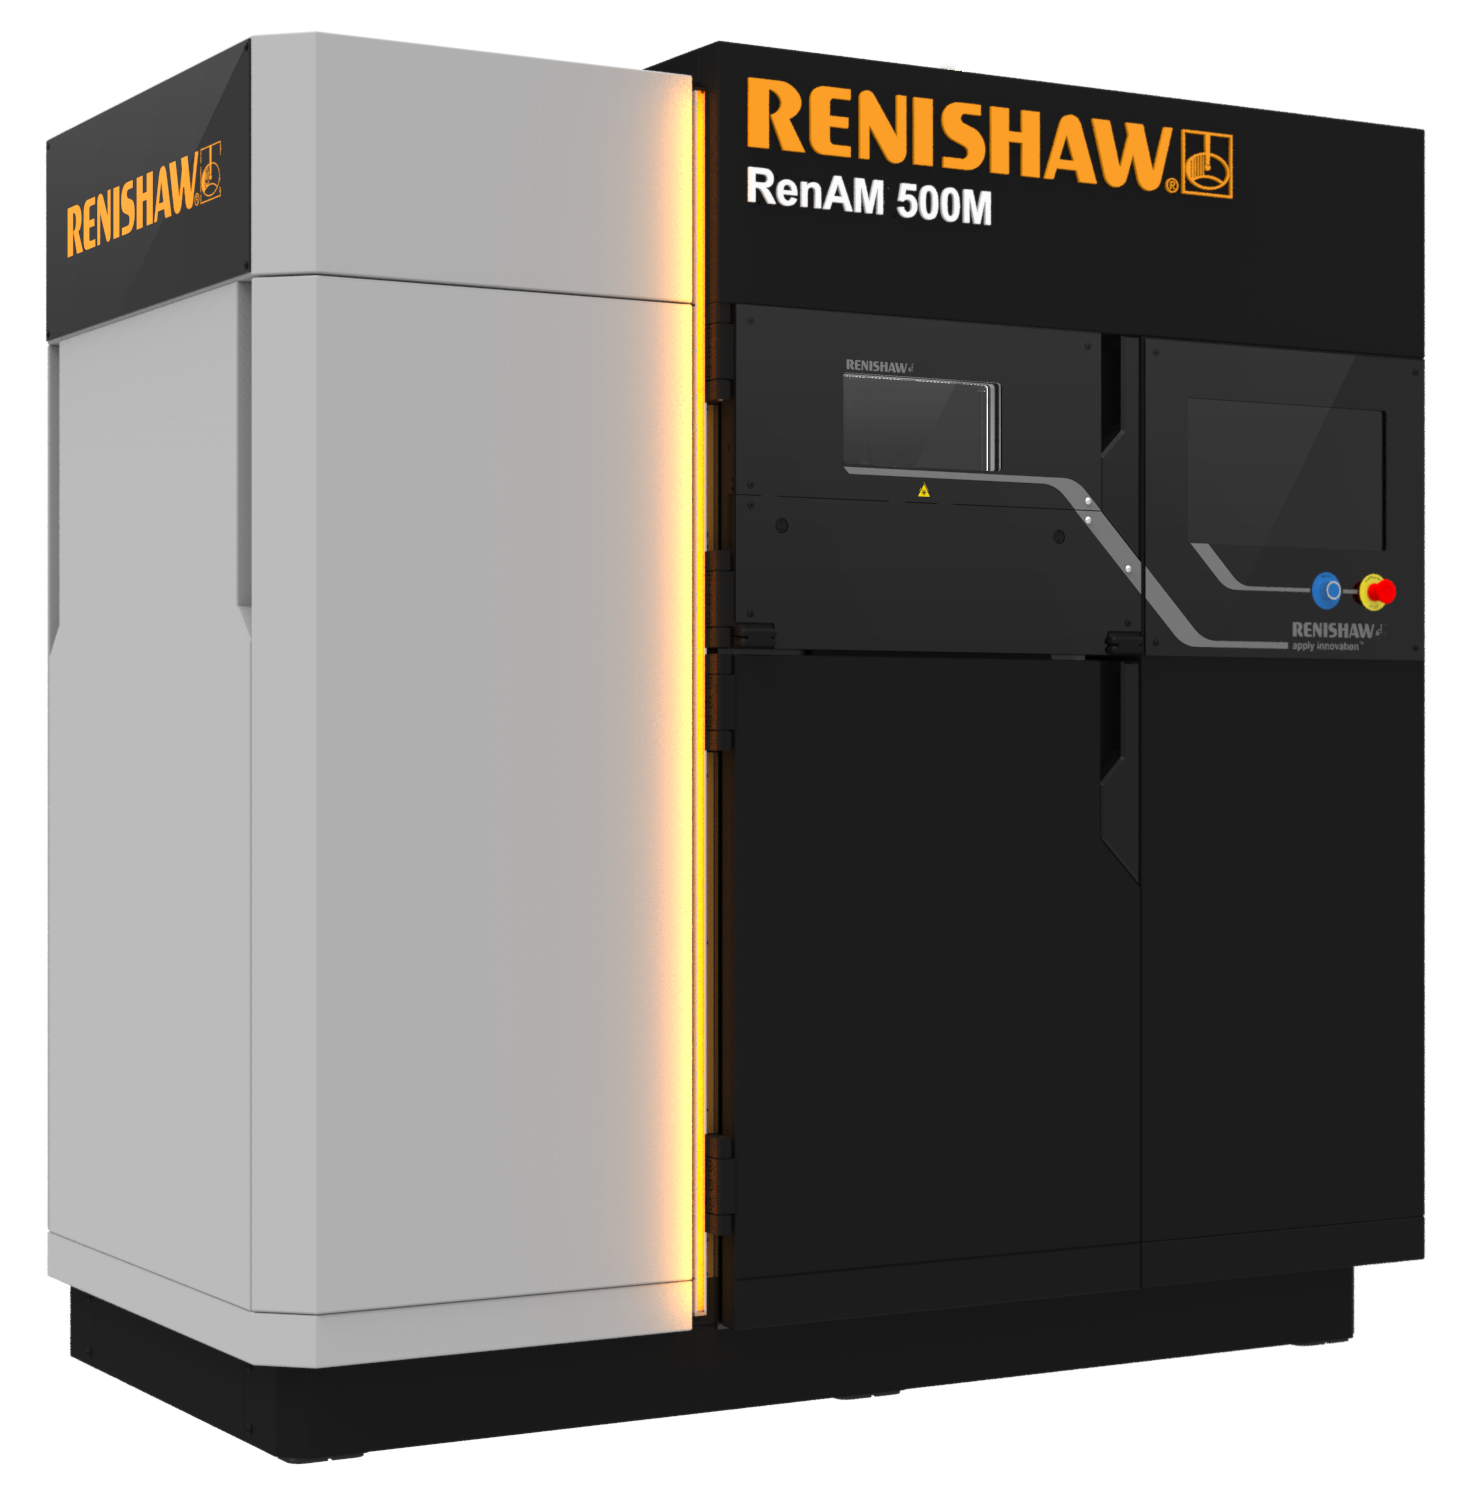 renishaw am 500 3d printing machine